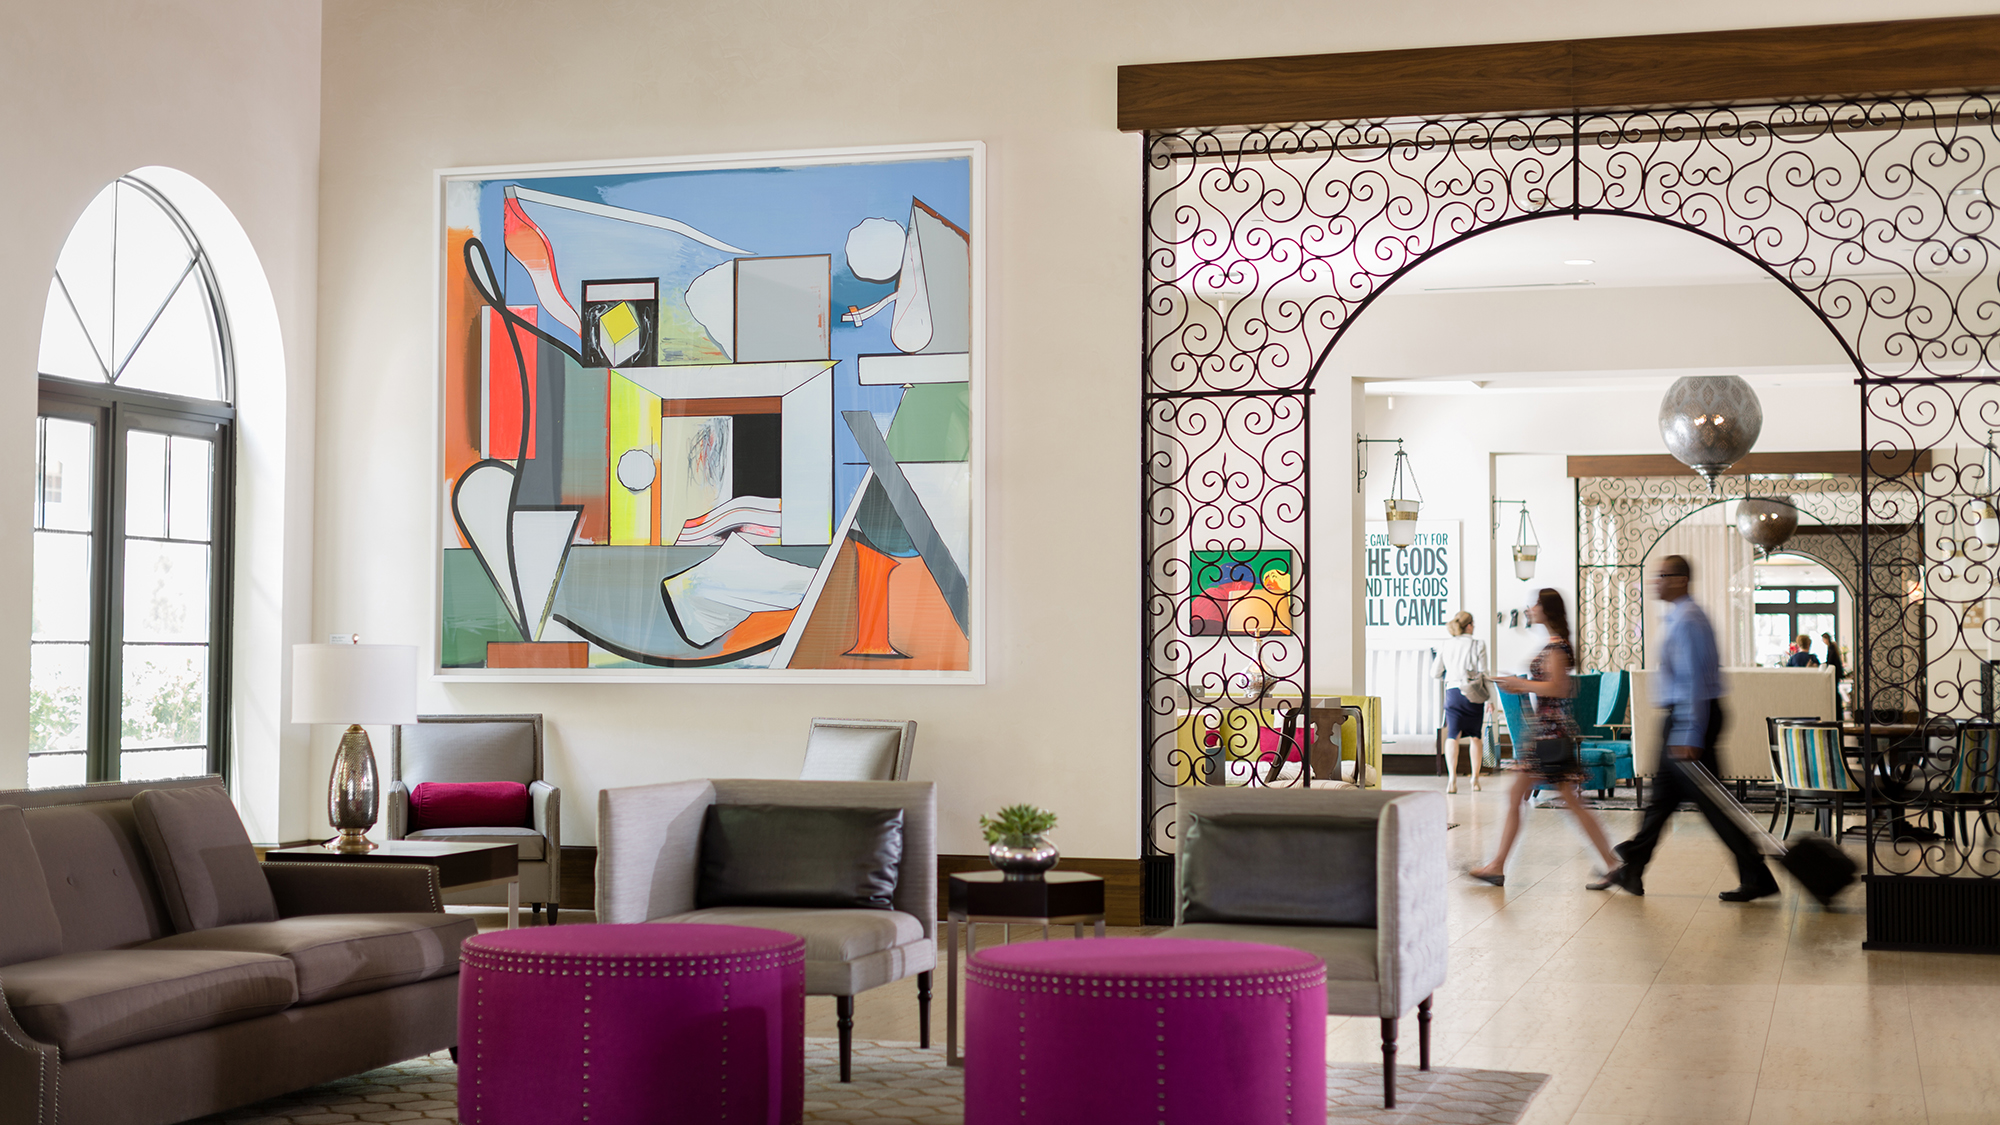 Spanish architecture melds with contemporary art in the Alfond Inn's lobby.